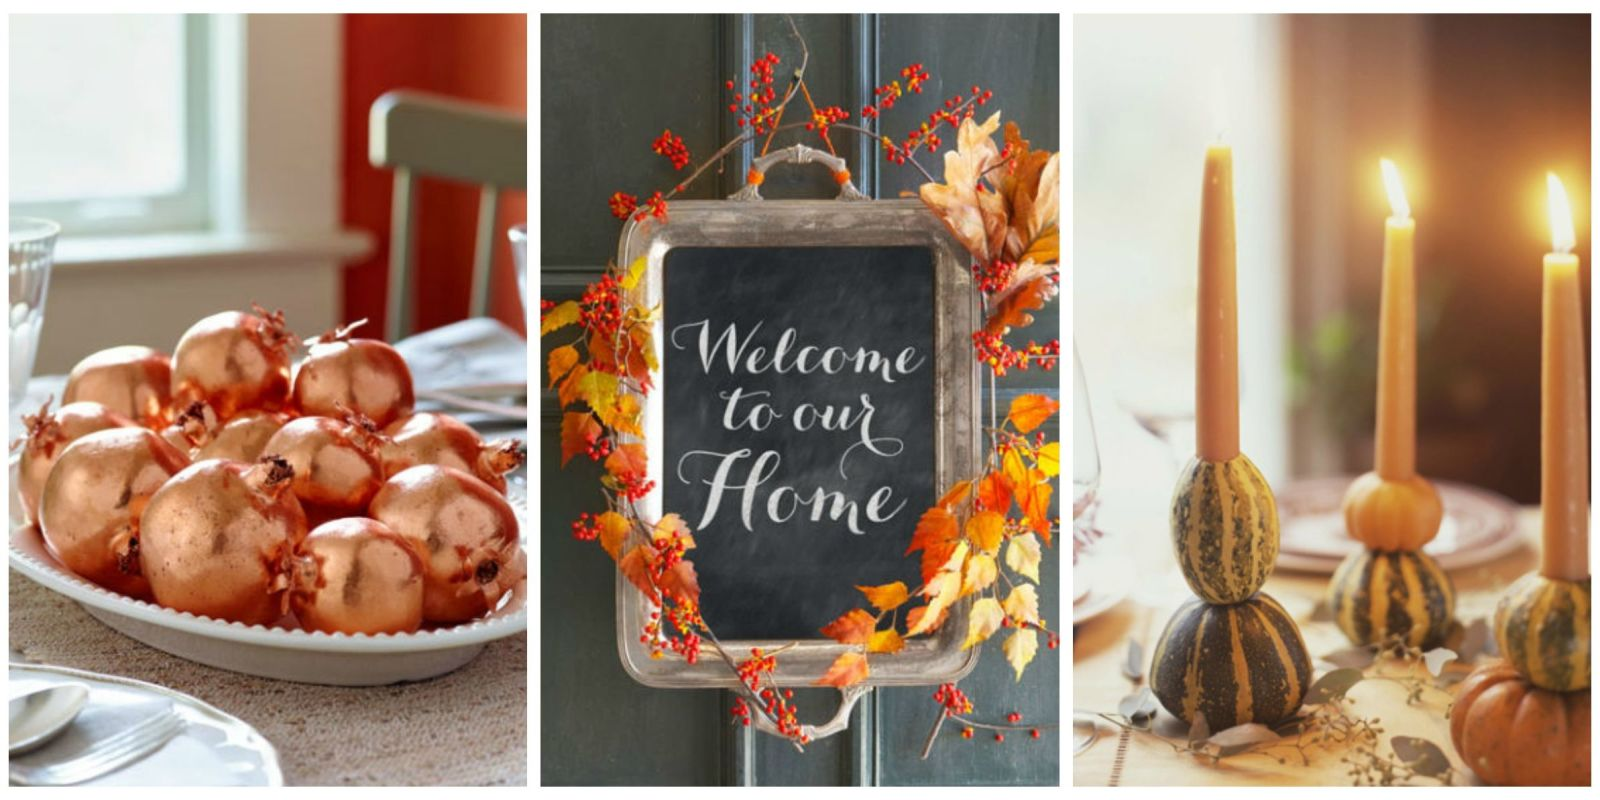 40 easy diy thanksgiving decorations - best ideas for thanksgiving